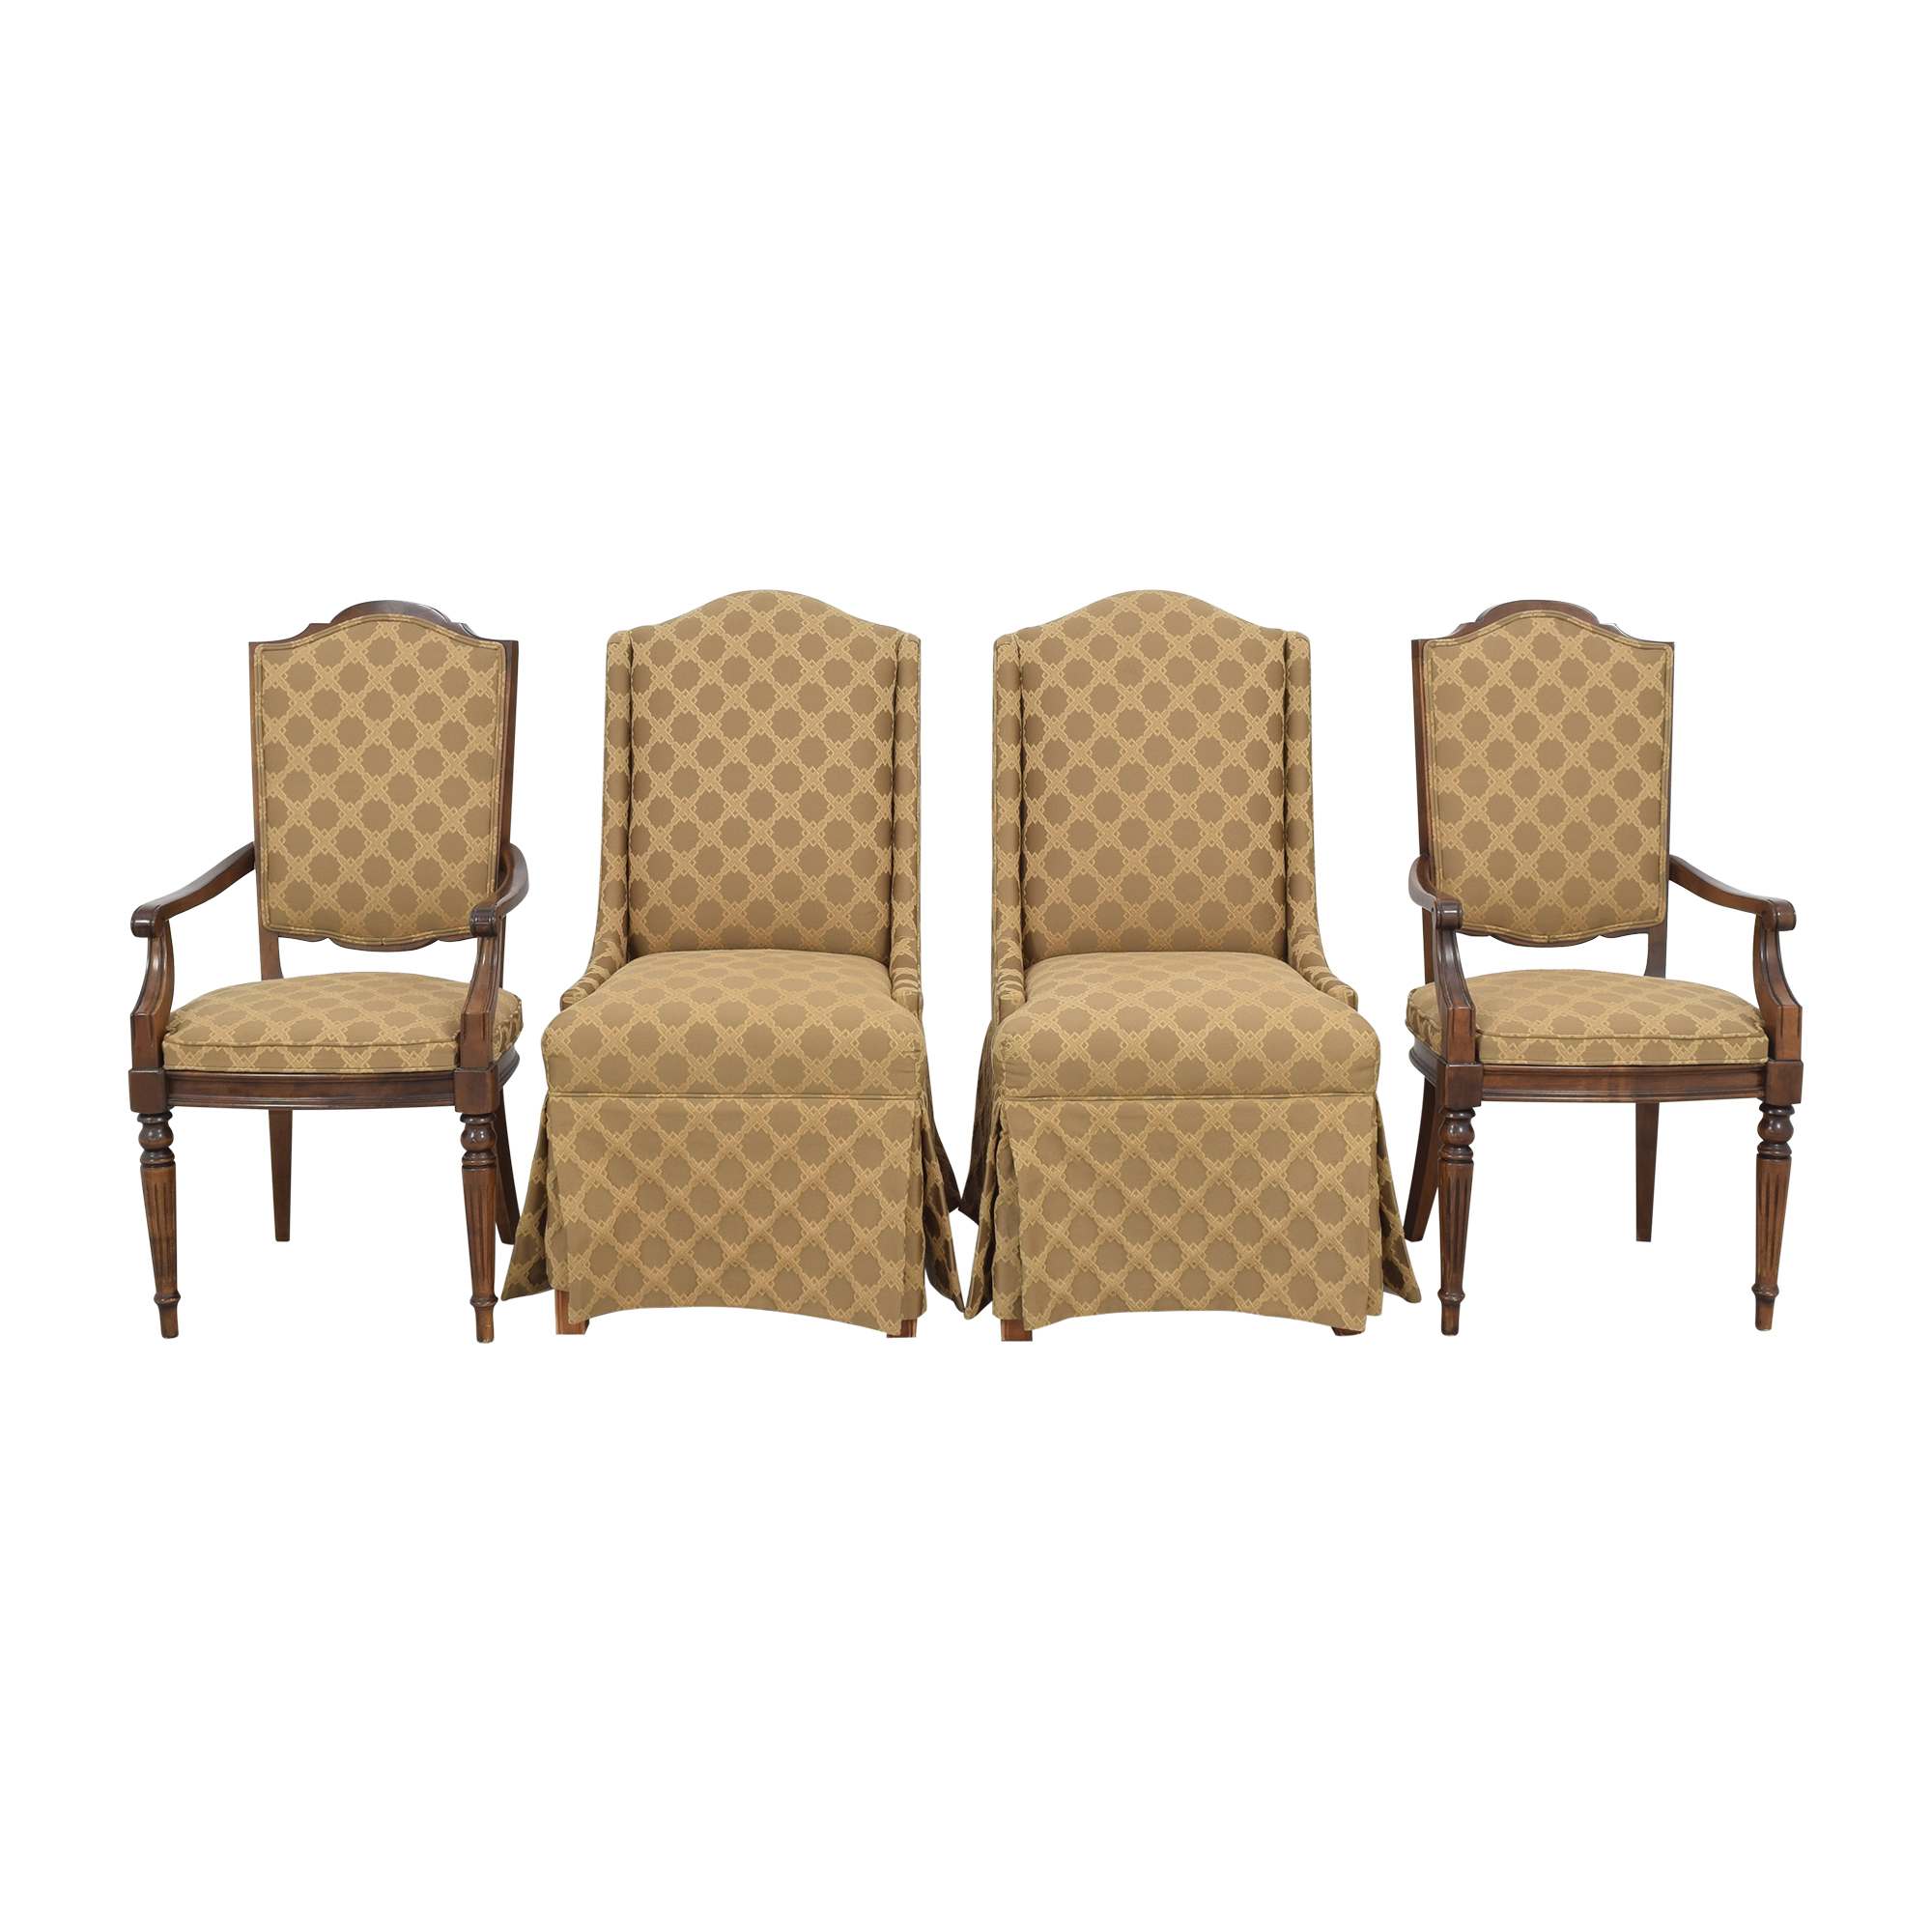 Ethan Allen Ethan Allen Upholstered Dining Chairs on sale